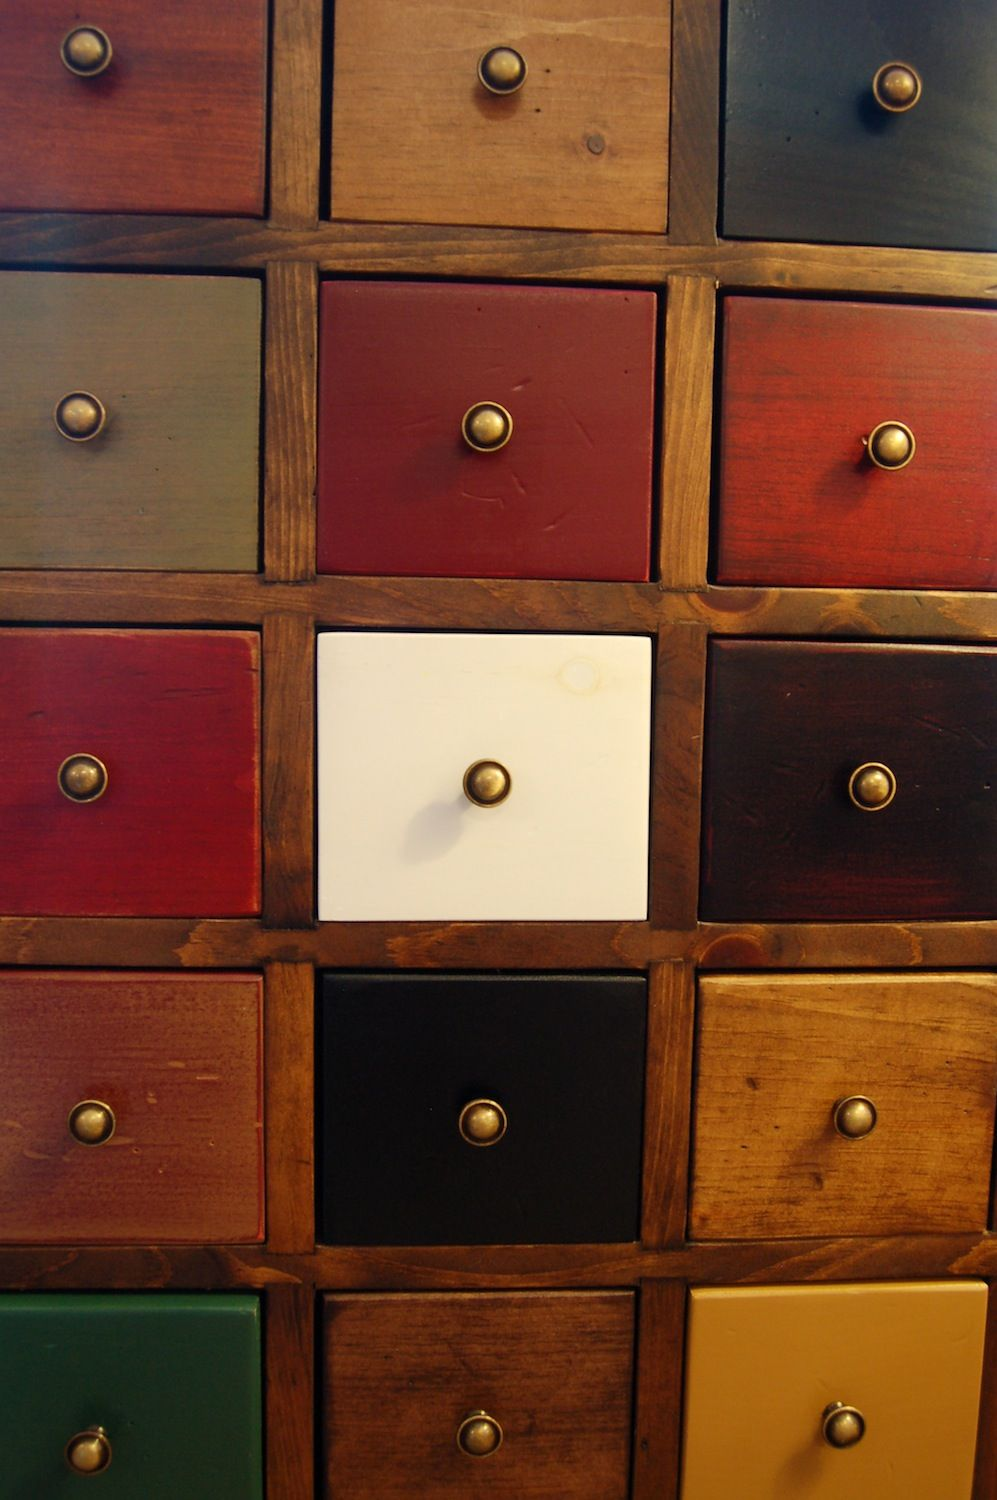 Ordinaire Westmoreland Woodworks In Georgia Makes This Attractive Apothecary Chest.  The Drawer Fronts Show Some Of